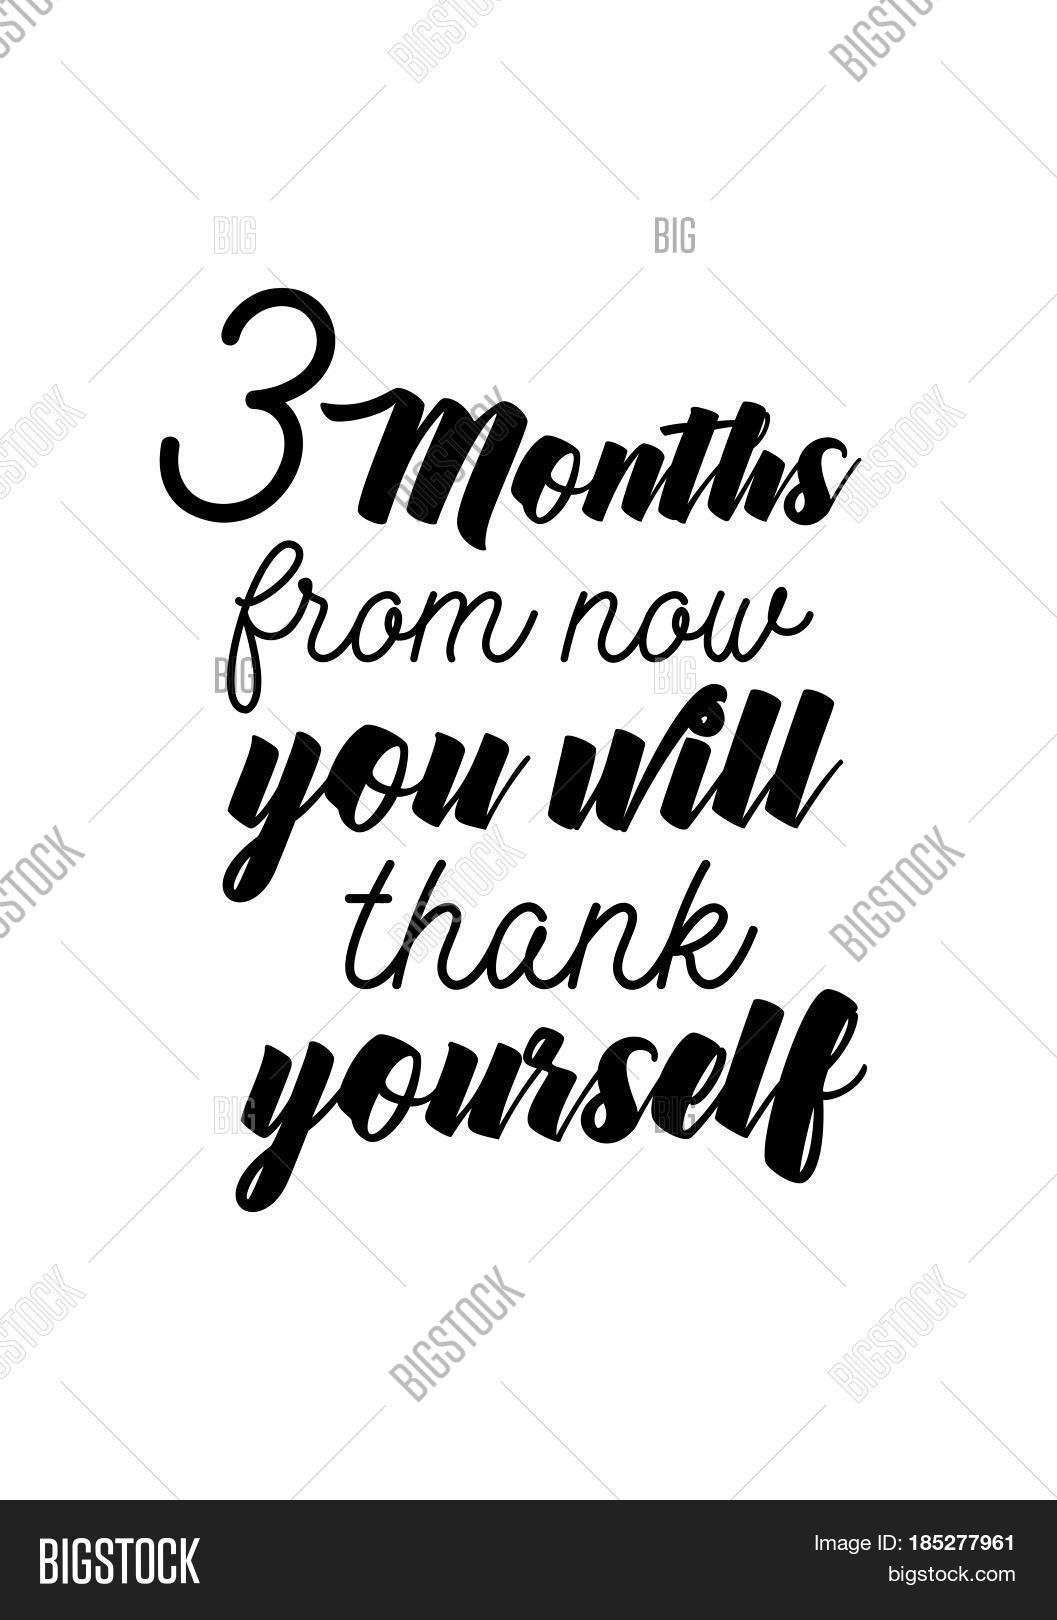 Lettering Quotes Motivation About Life Quote Igraphy Inspirational Quote 3 Months From Now